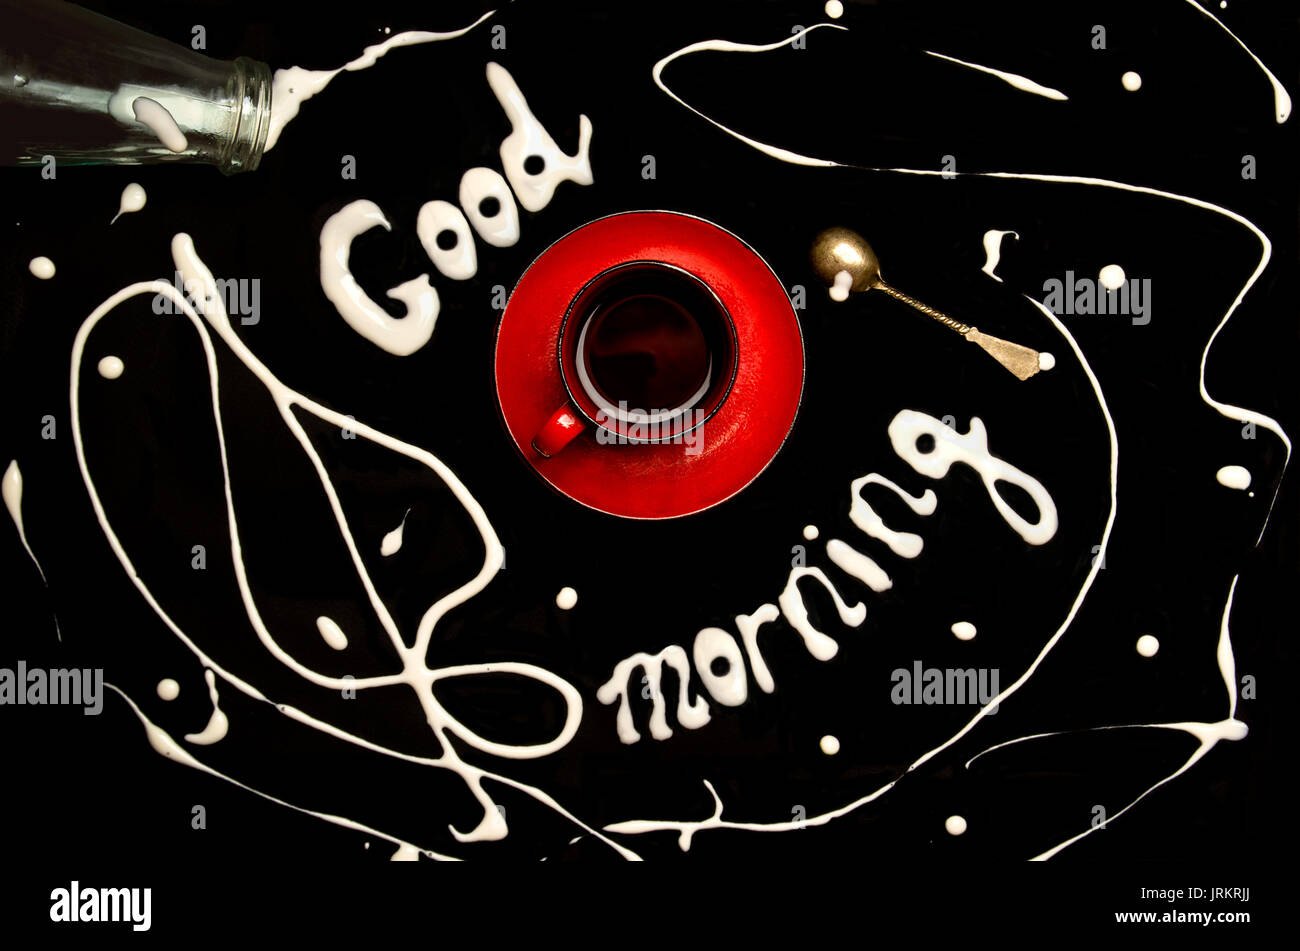 Red cup of coffee on a black background and 'Good morning!' written with milk - Stock Image